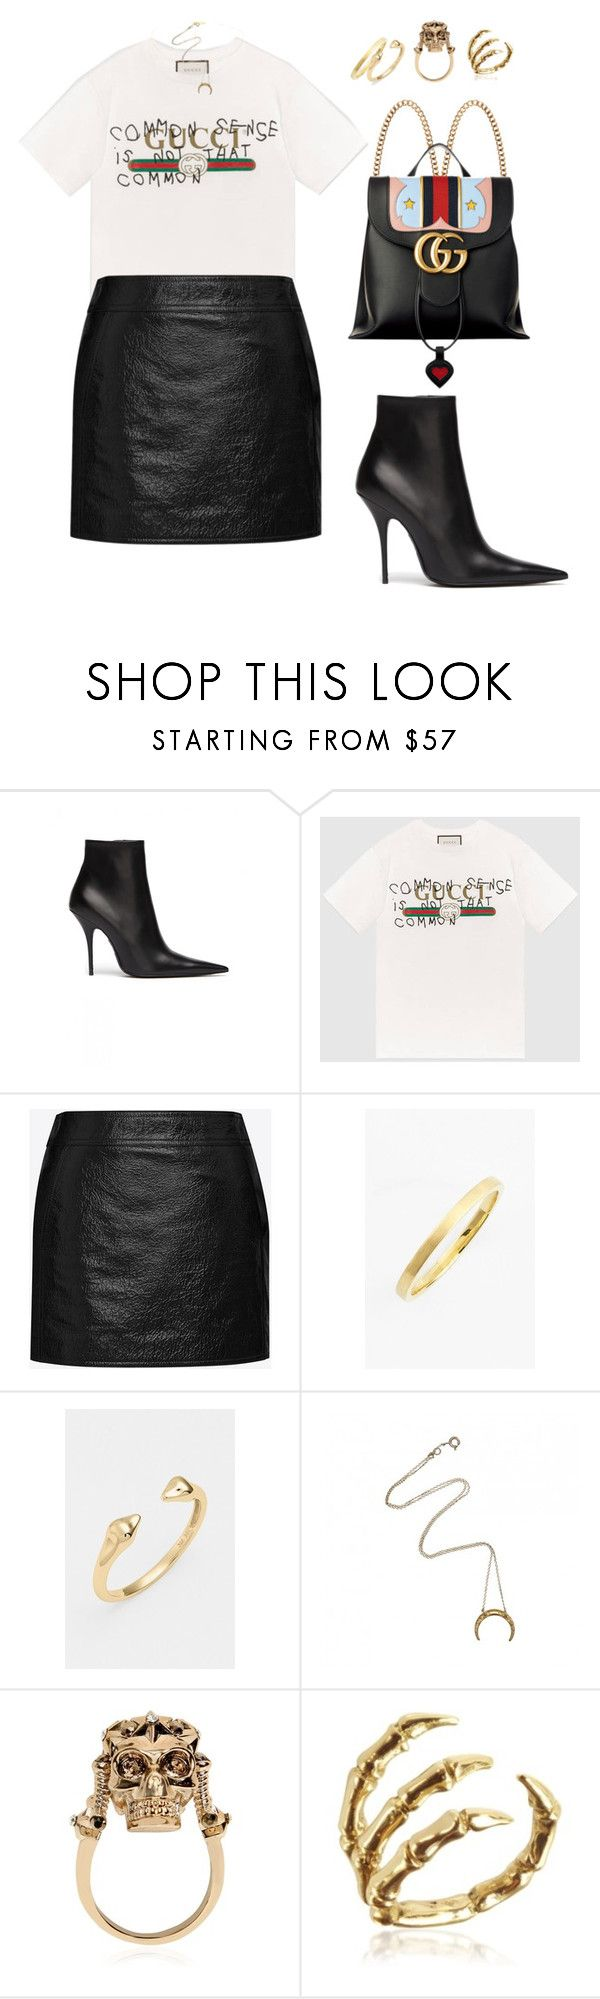 """""""Untitled #1080"""" by elipenaserrano ❤ liked on Polyvore featuring Balenciaga, Gucci, Yves Saint Laurent, Bony Levy, Alexander McQueen and Bernard Delettrez"""